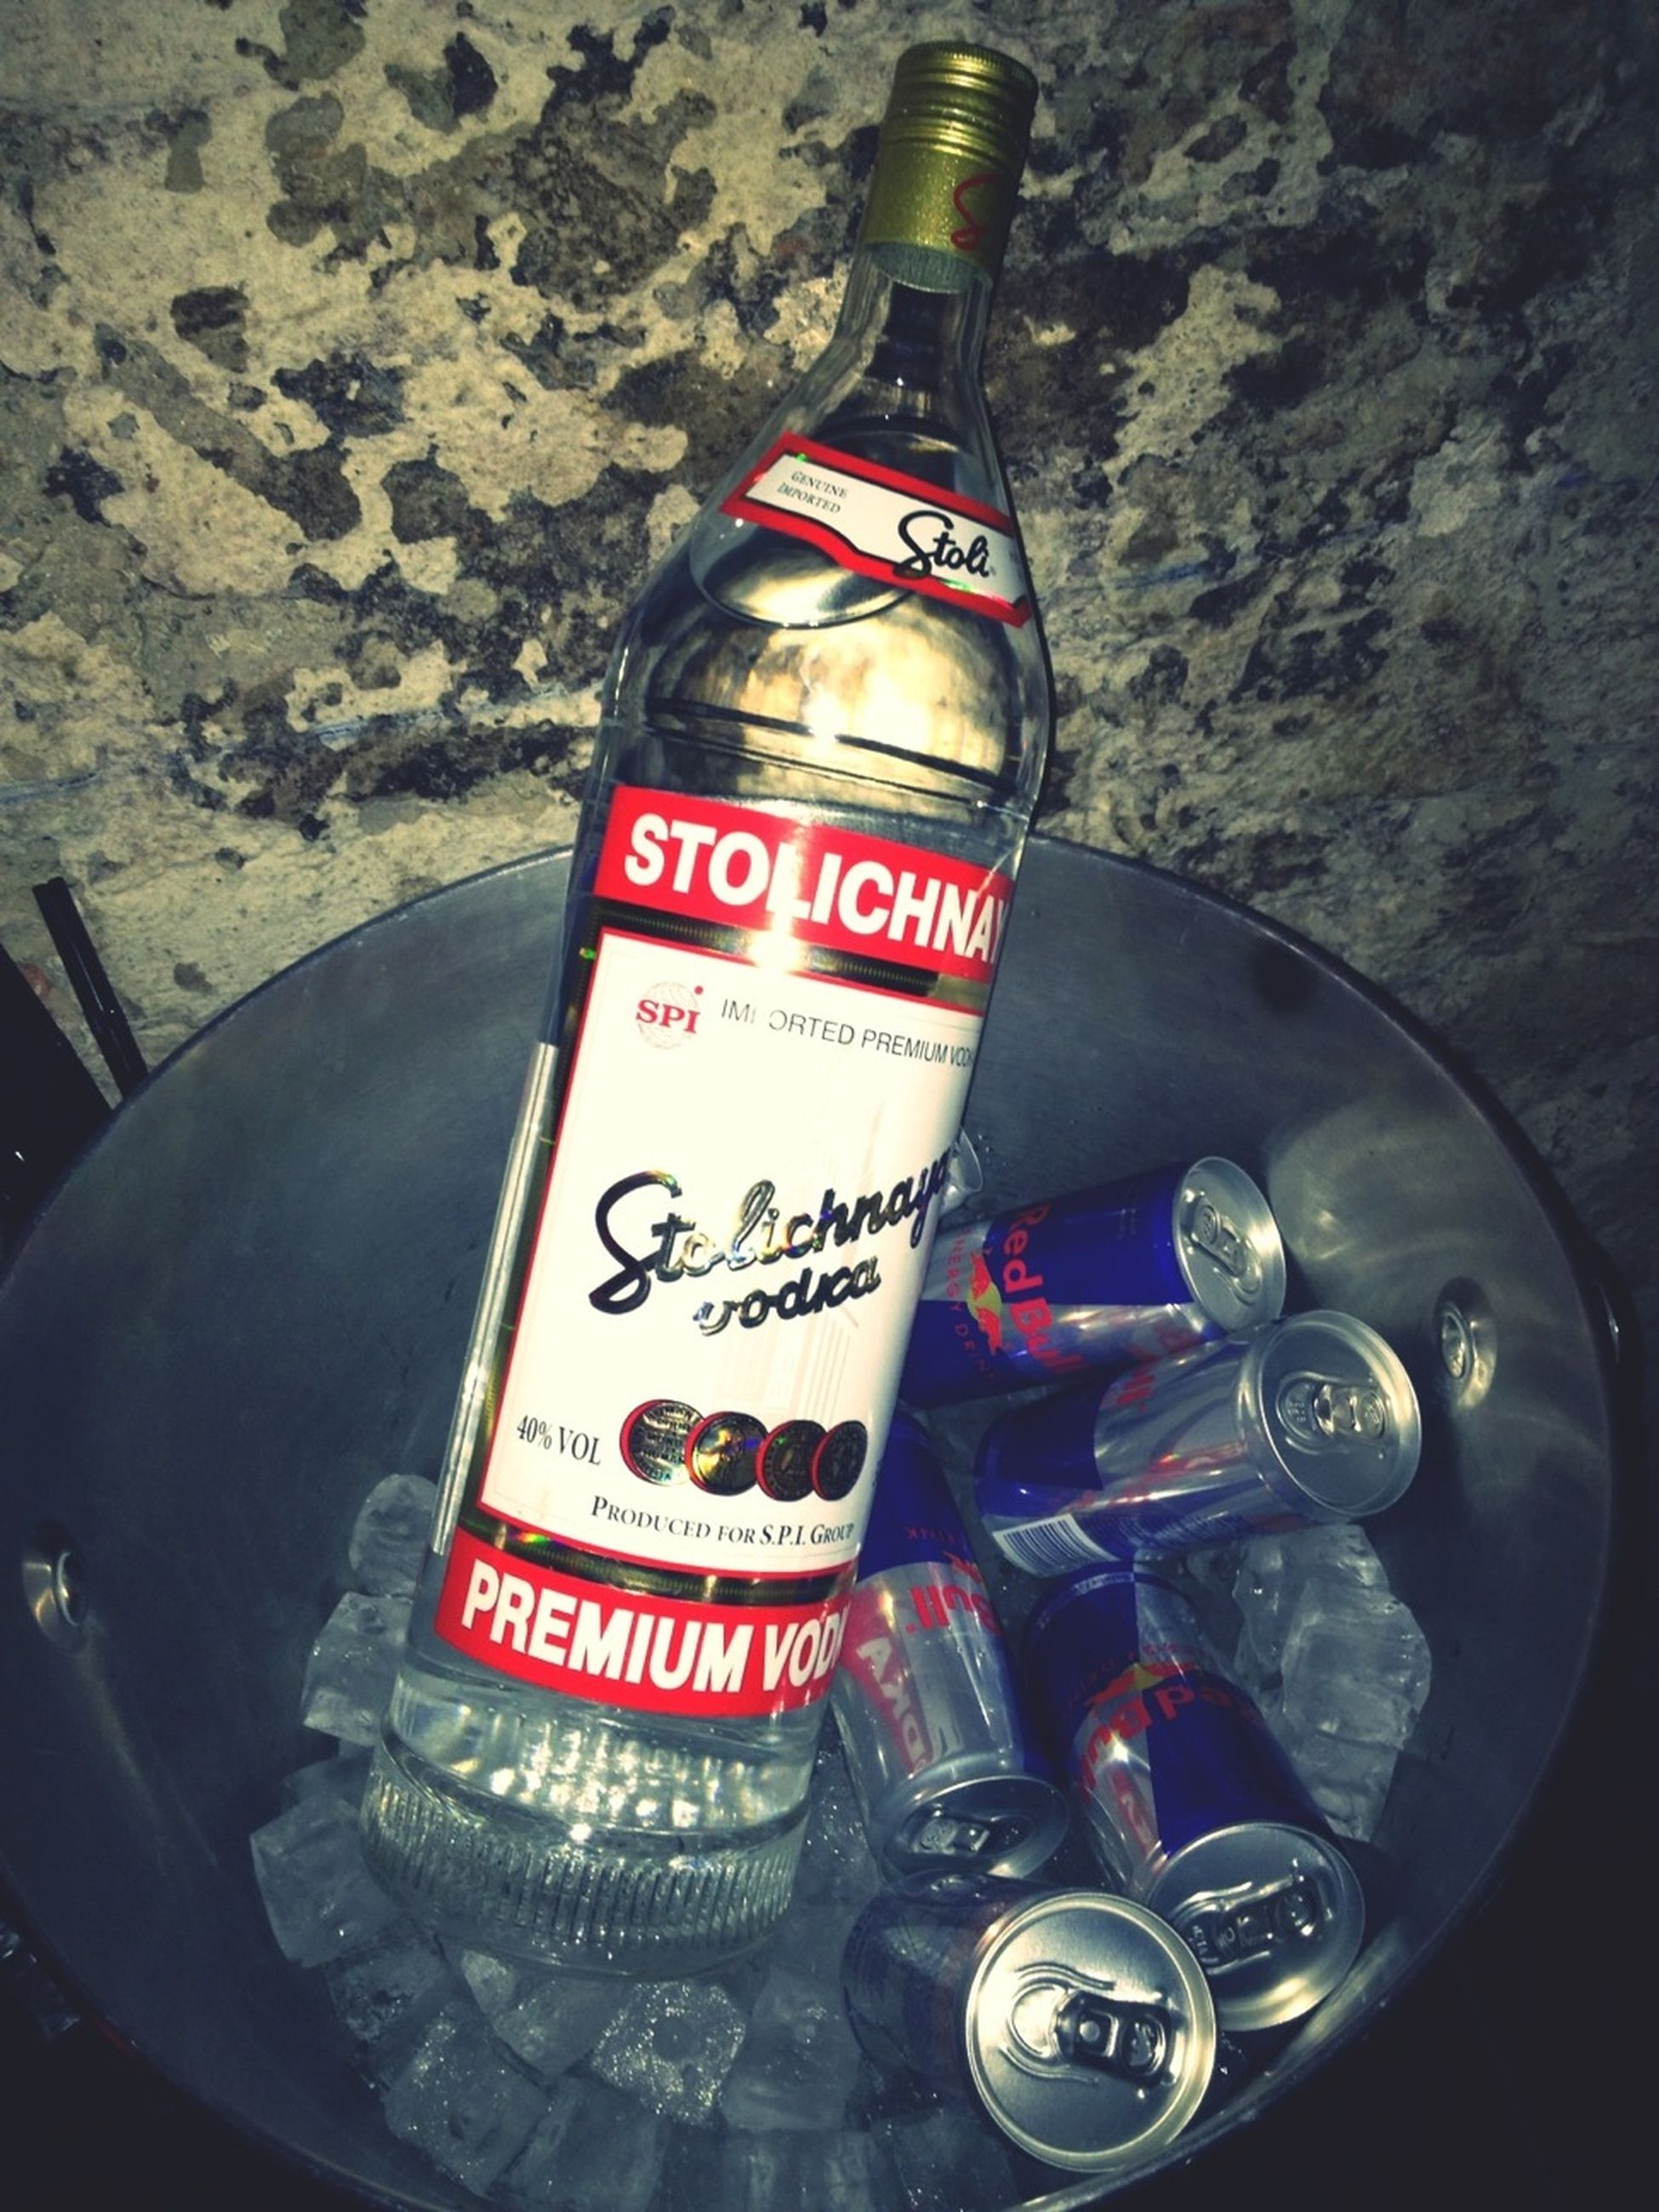 The endless possibilities at the bottom of a bottle of Stolichnaya.